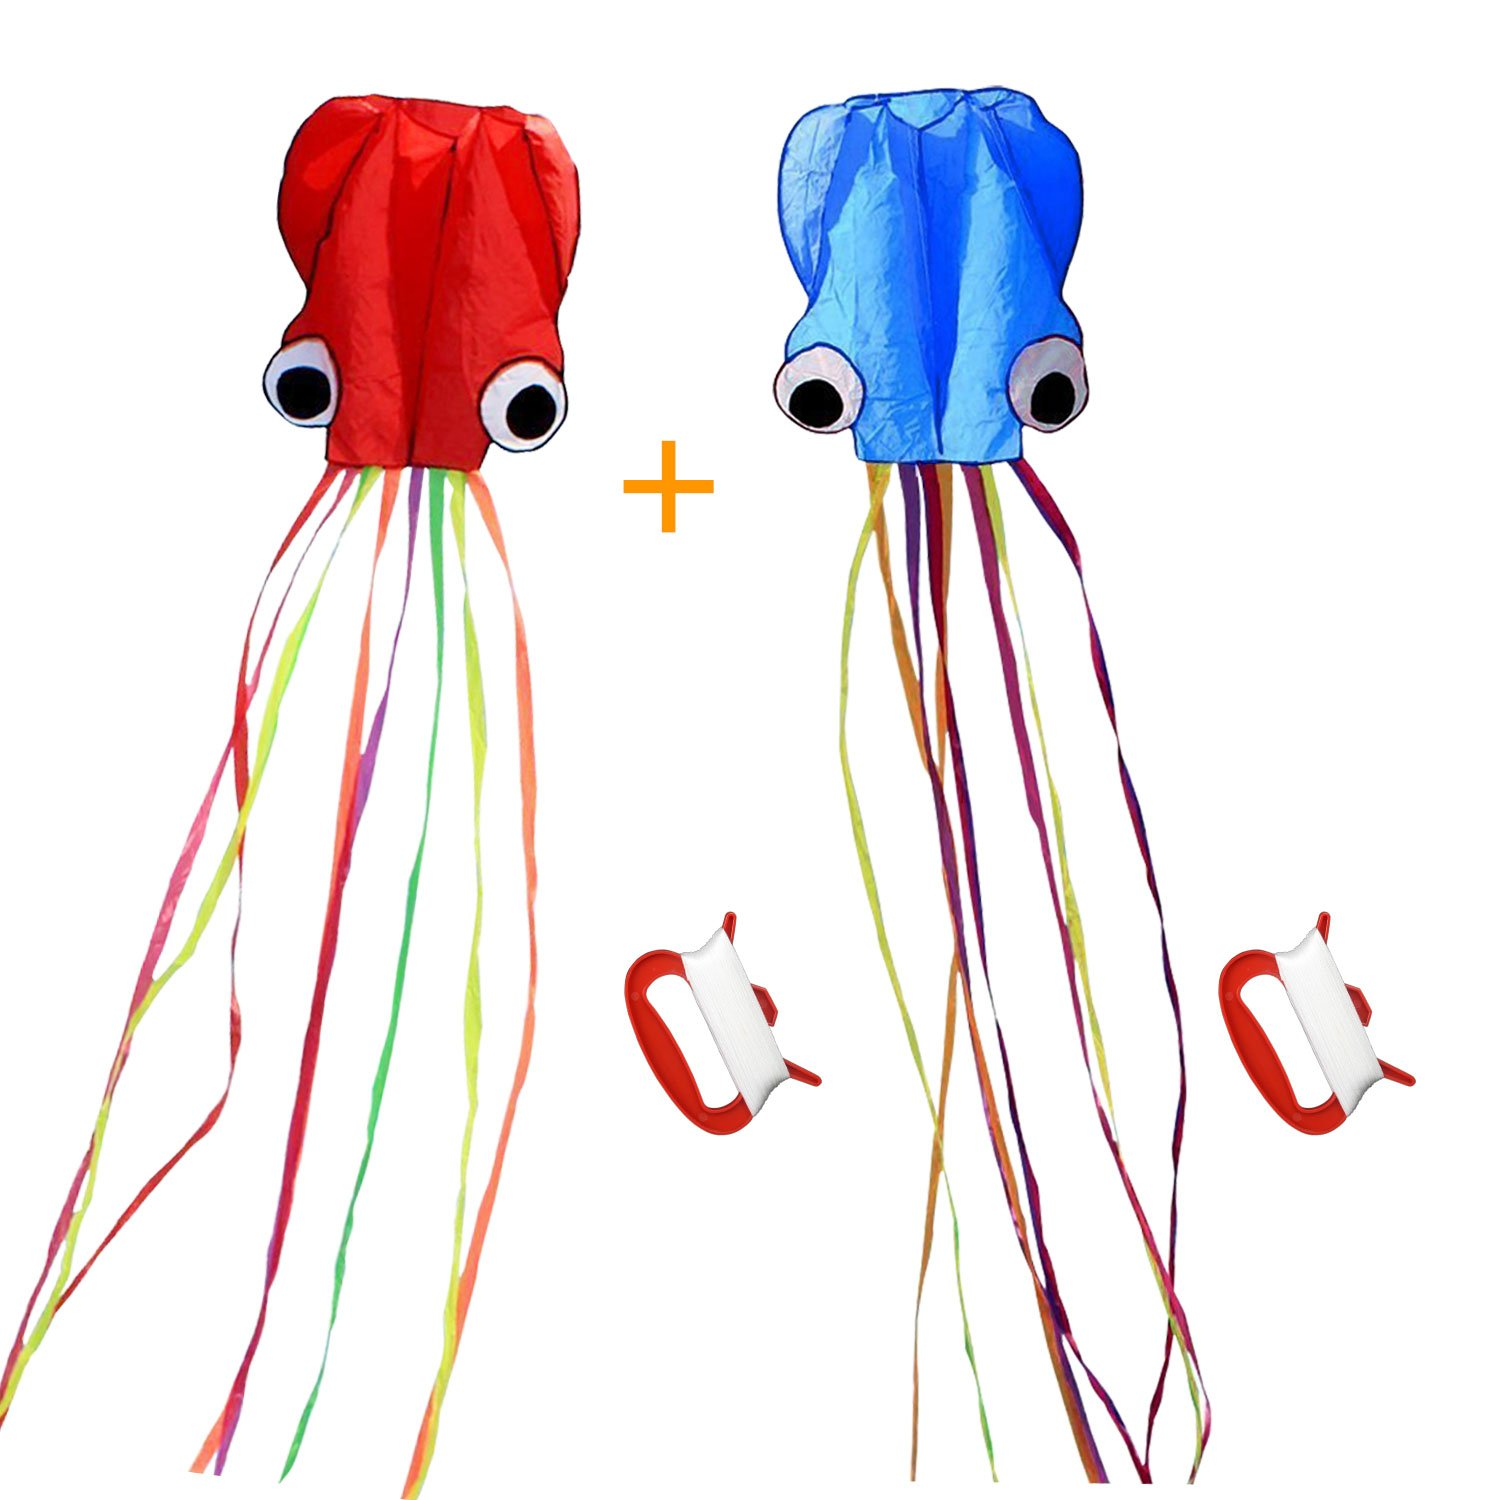 SINGARE Large Octopus Kite Long Tail Beautiful Easy Flyer Kites Beach Kites Good Toys for Kids and Adults(Red+Blue)